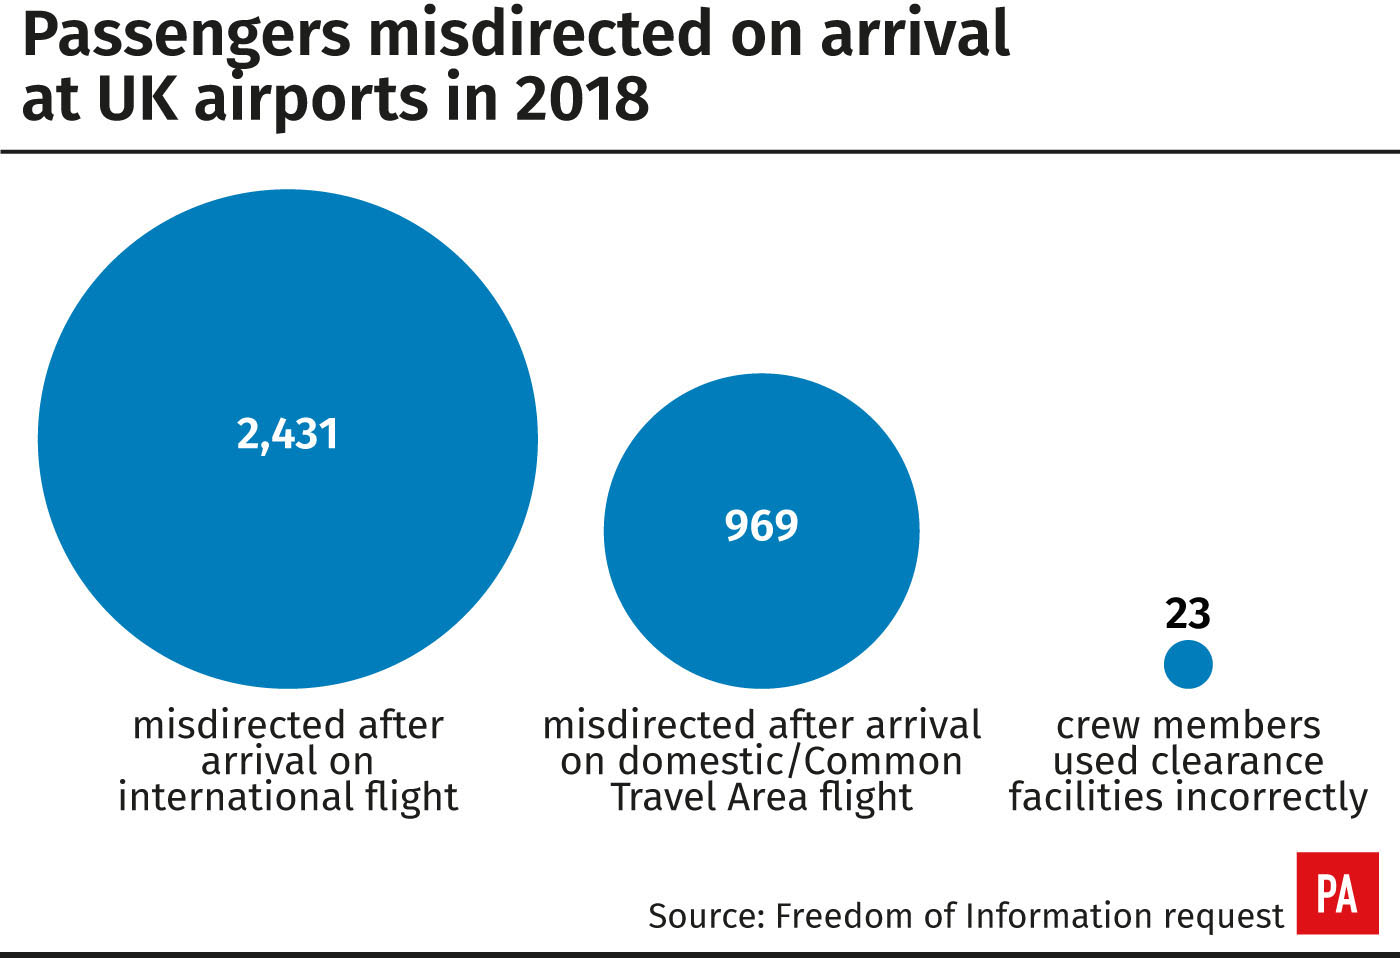 Passengers misdirected on arrival at UK airports in 2018